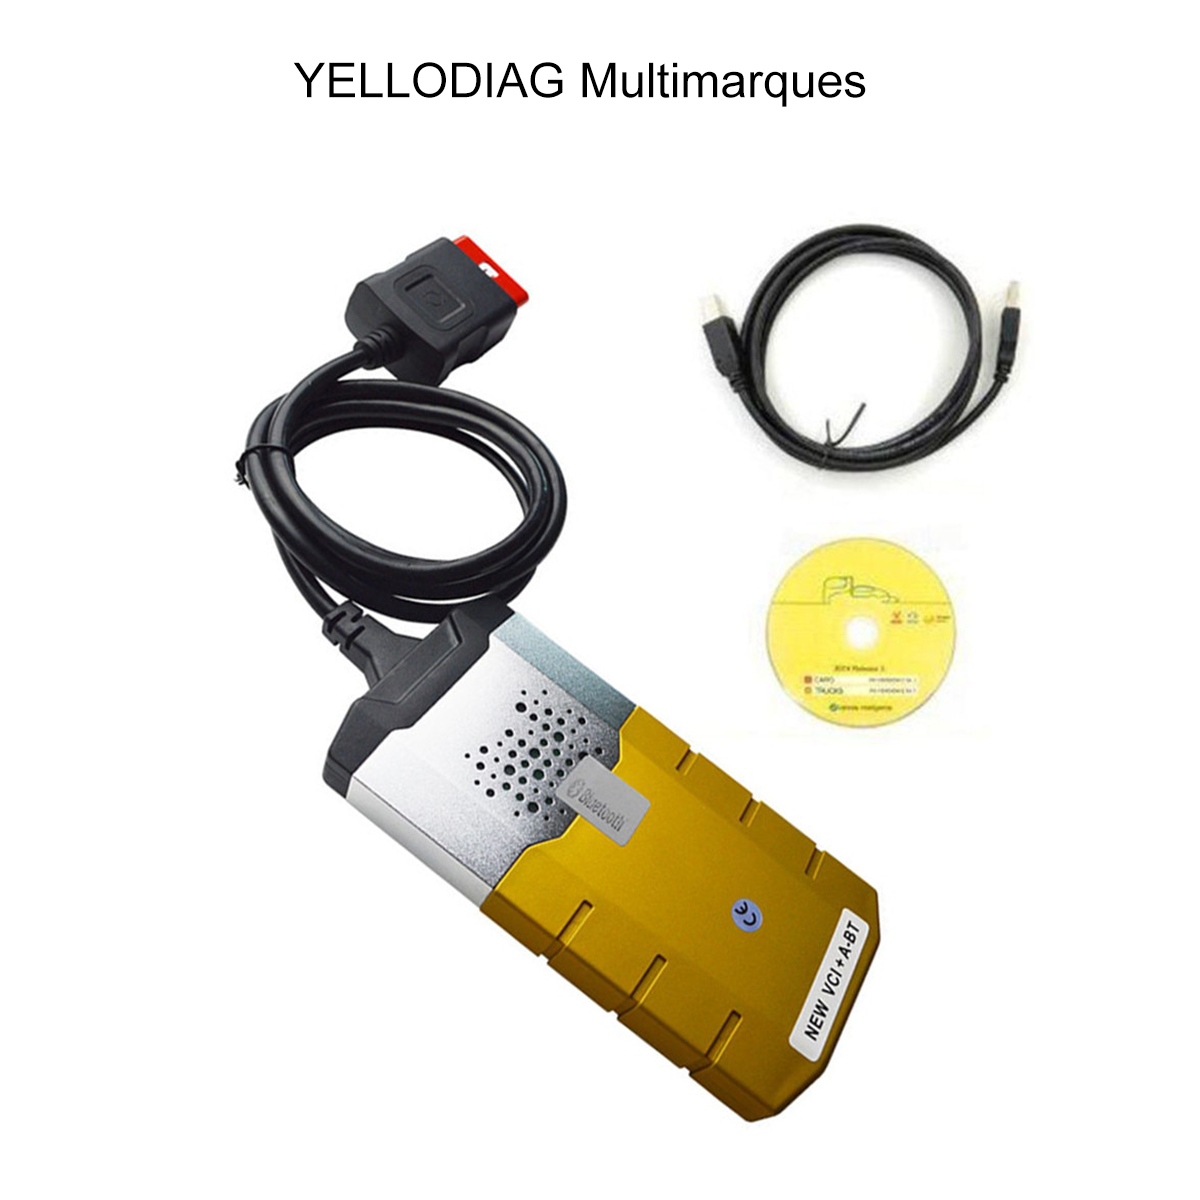 Valise de diagnostic YELLODIAG Multimarques